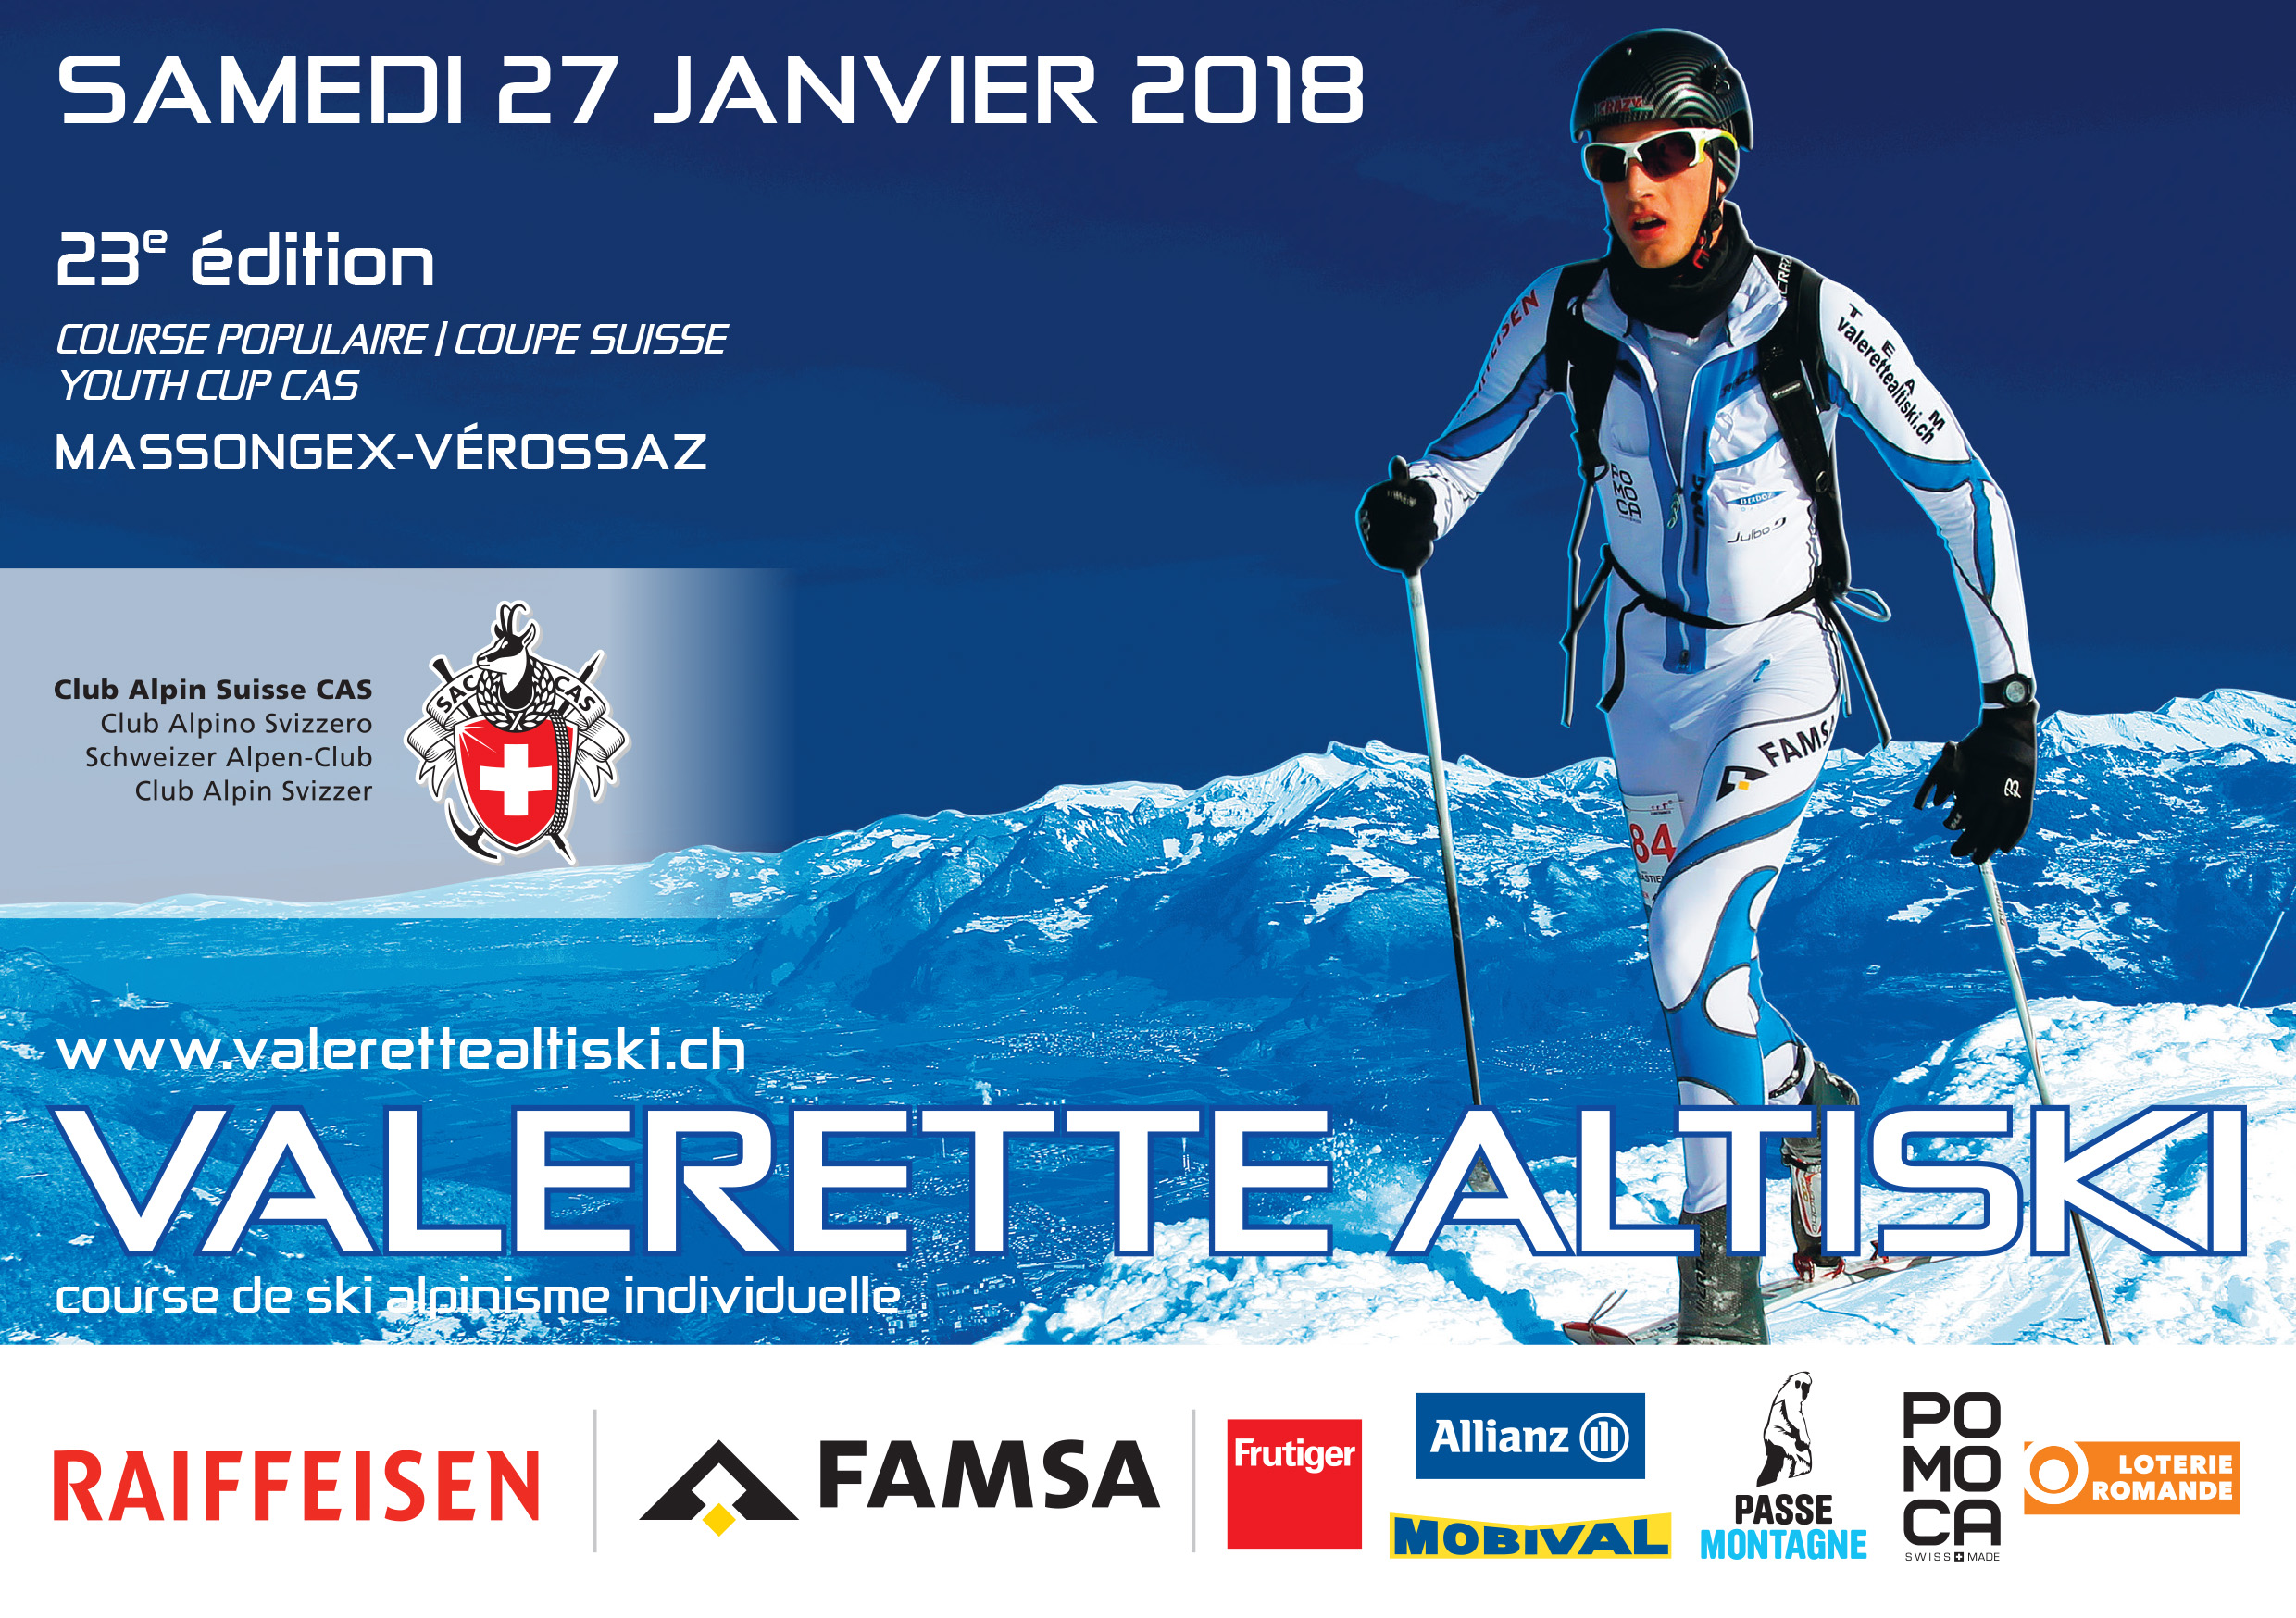 Media: Image_courses/2018/Valerette-Altiski-2018.jpg